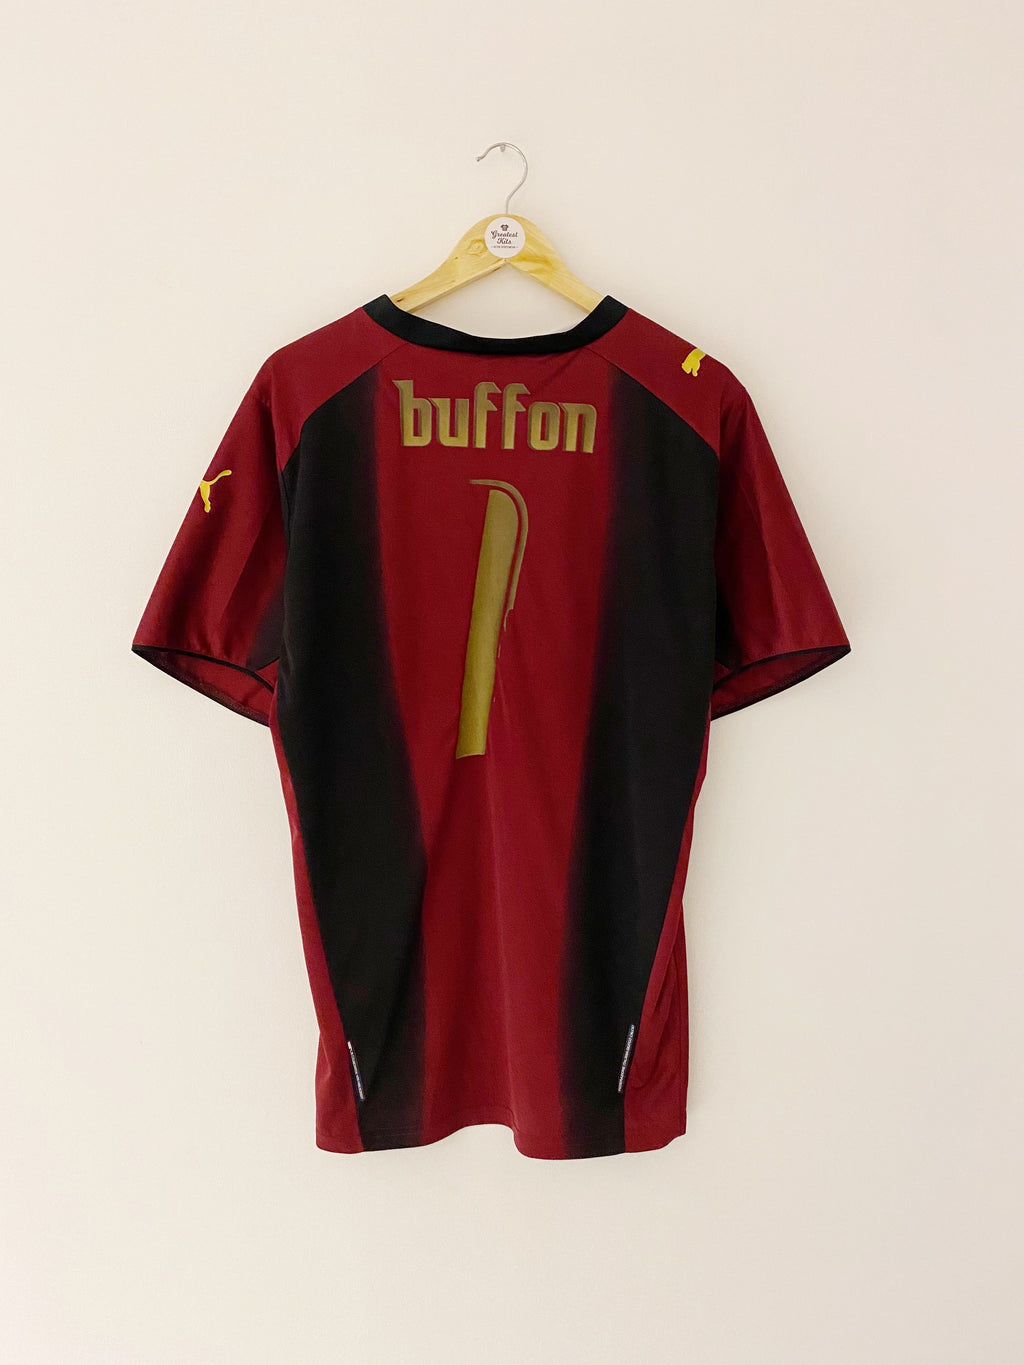 2006 Italy GK S/S Shirt Buffon #1 (XL) 7/10